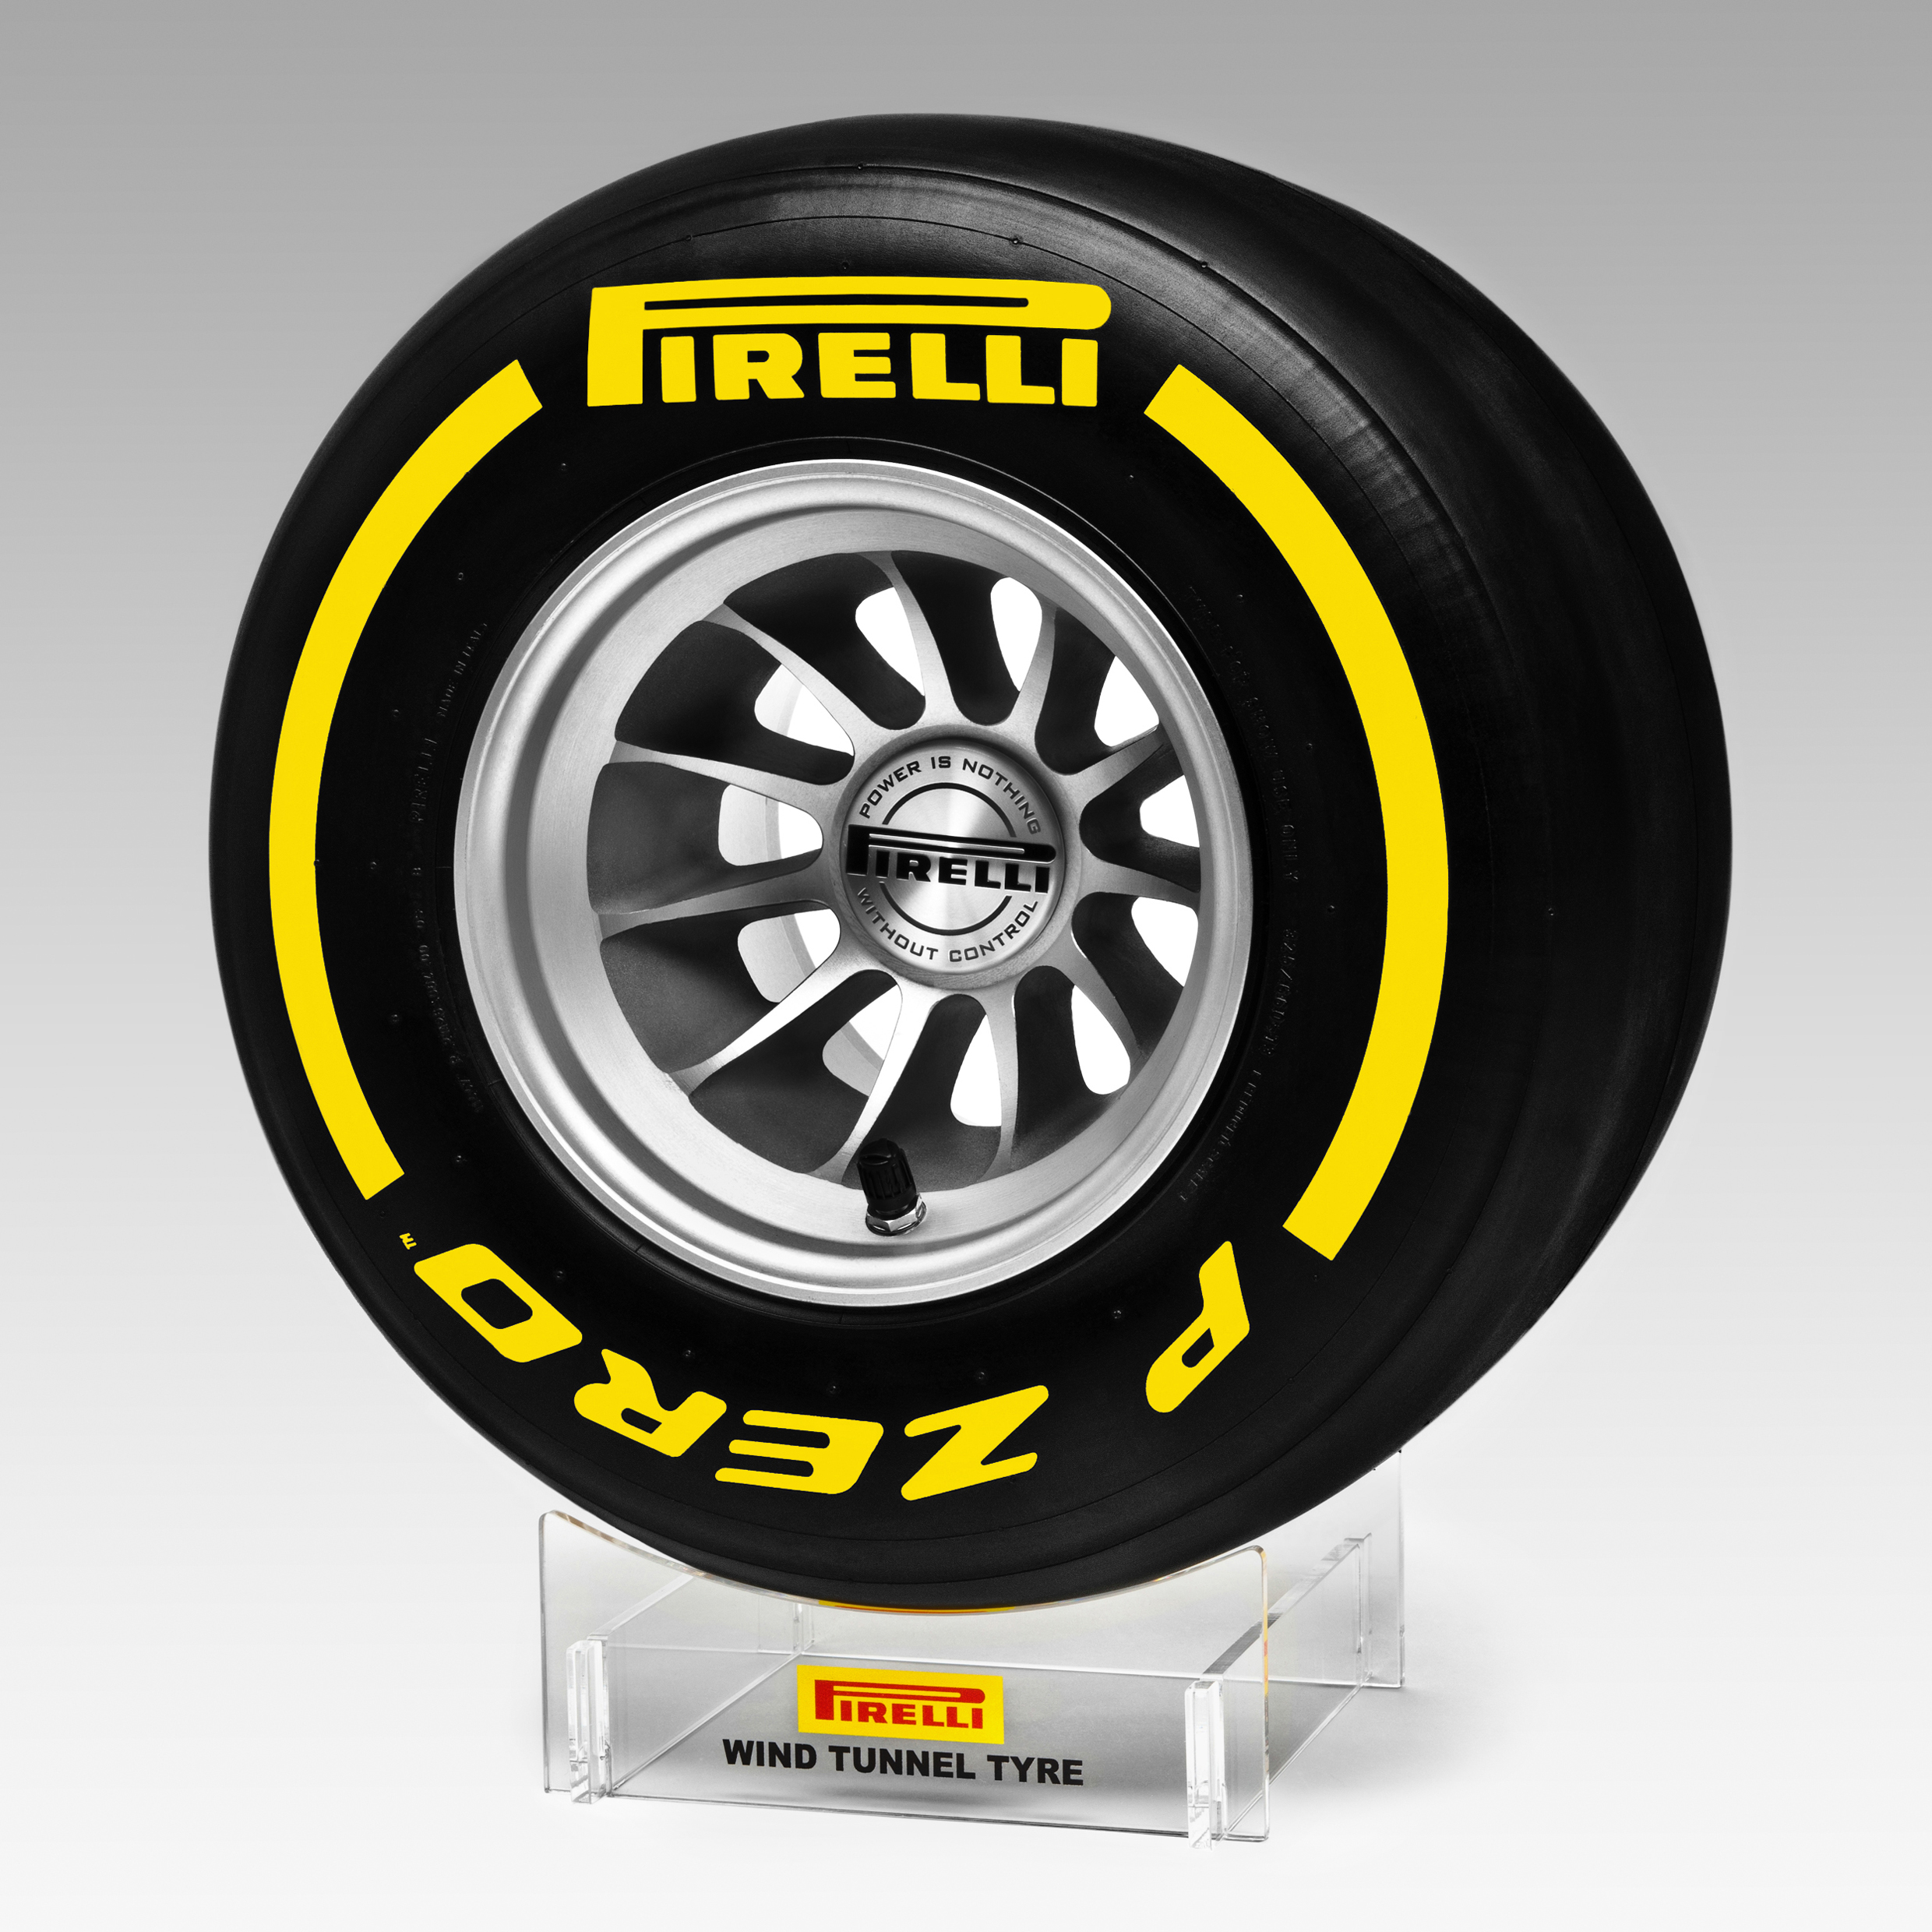 Pirelli Soft Replica Wind Tunnel Tyre 1:2 Scale